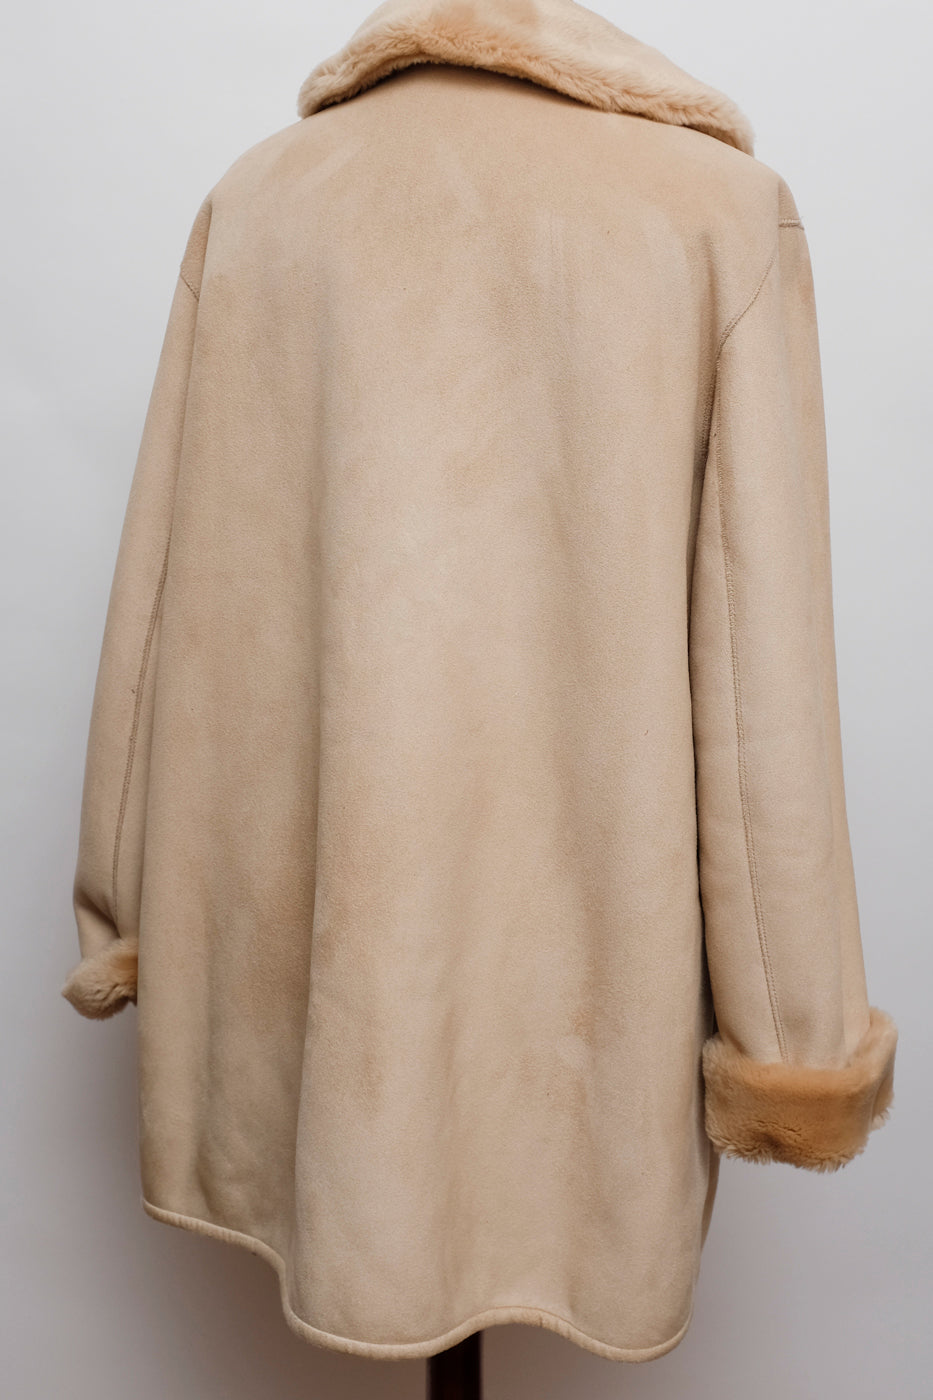 0007_VINTAGE TEDDY COAT